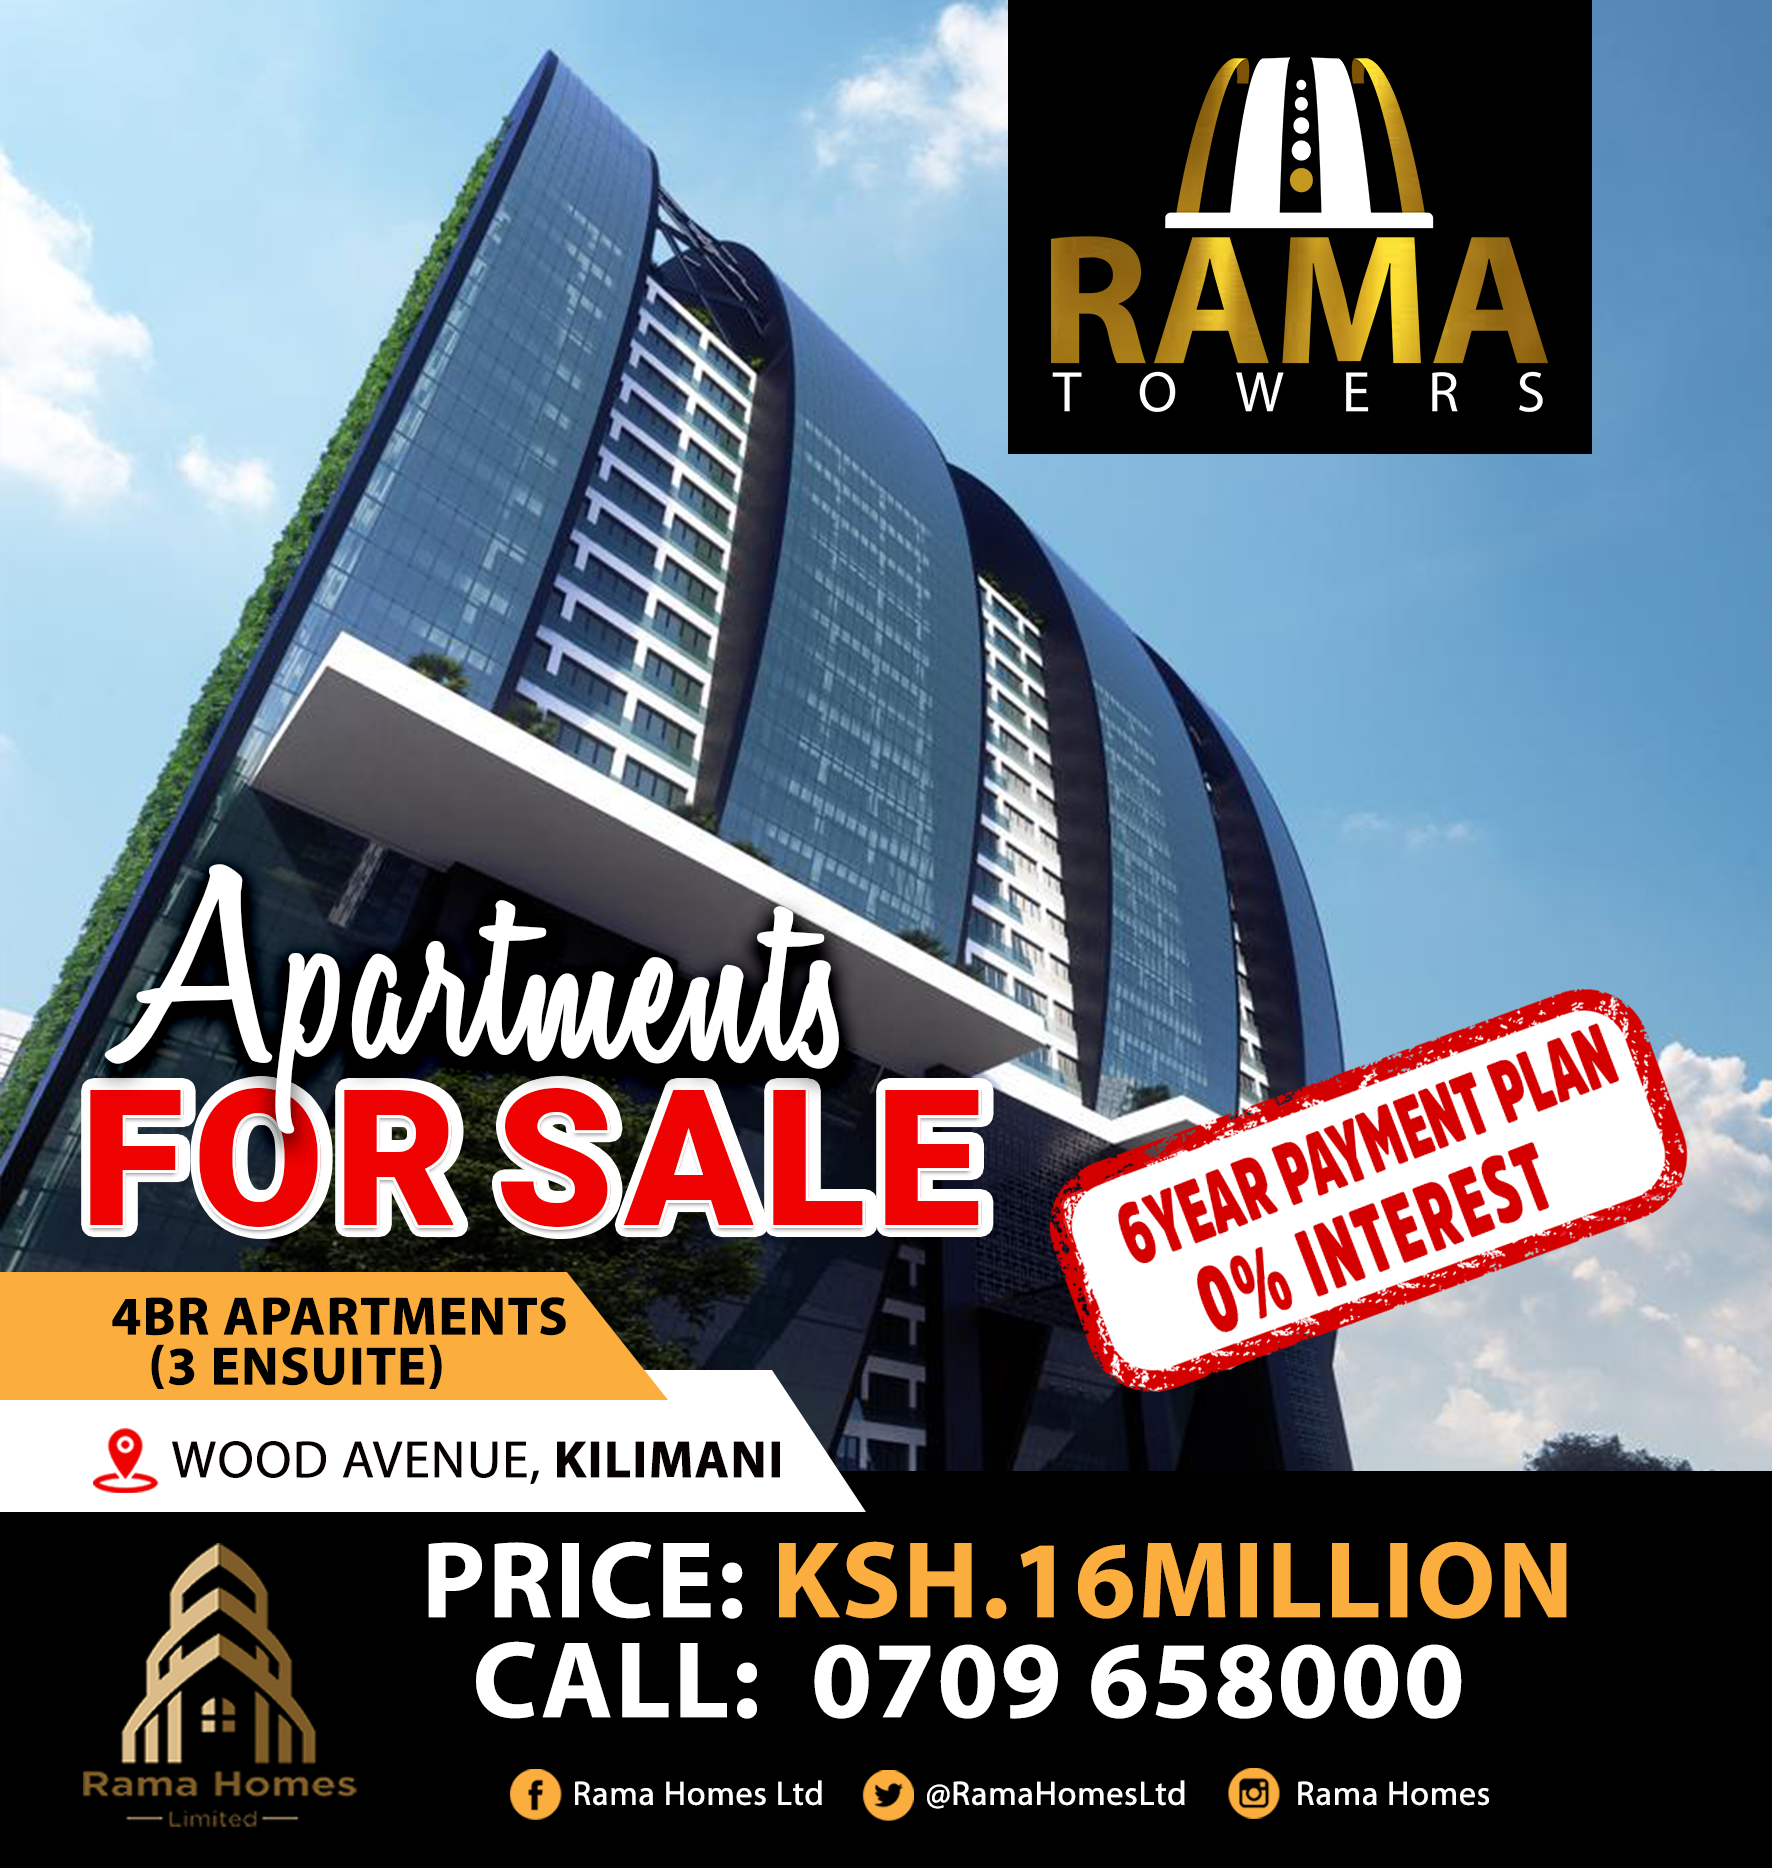 1559889858_Rama Towers Buyrent kenya flyer.png